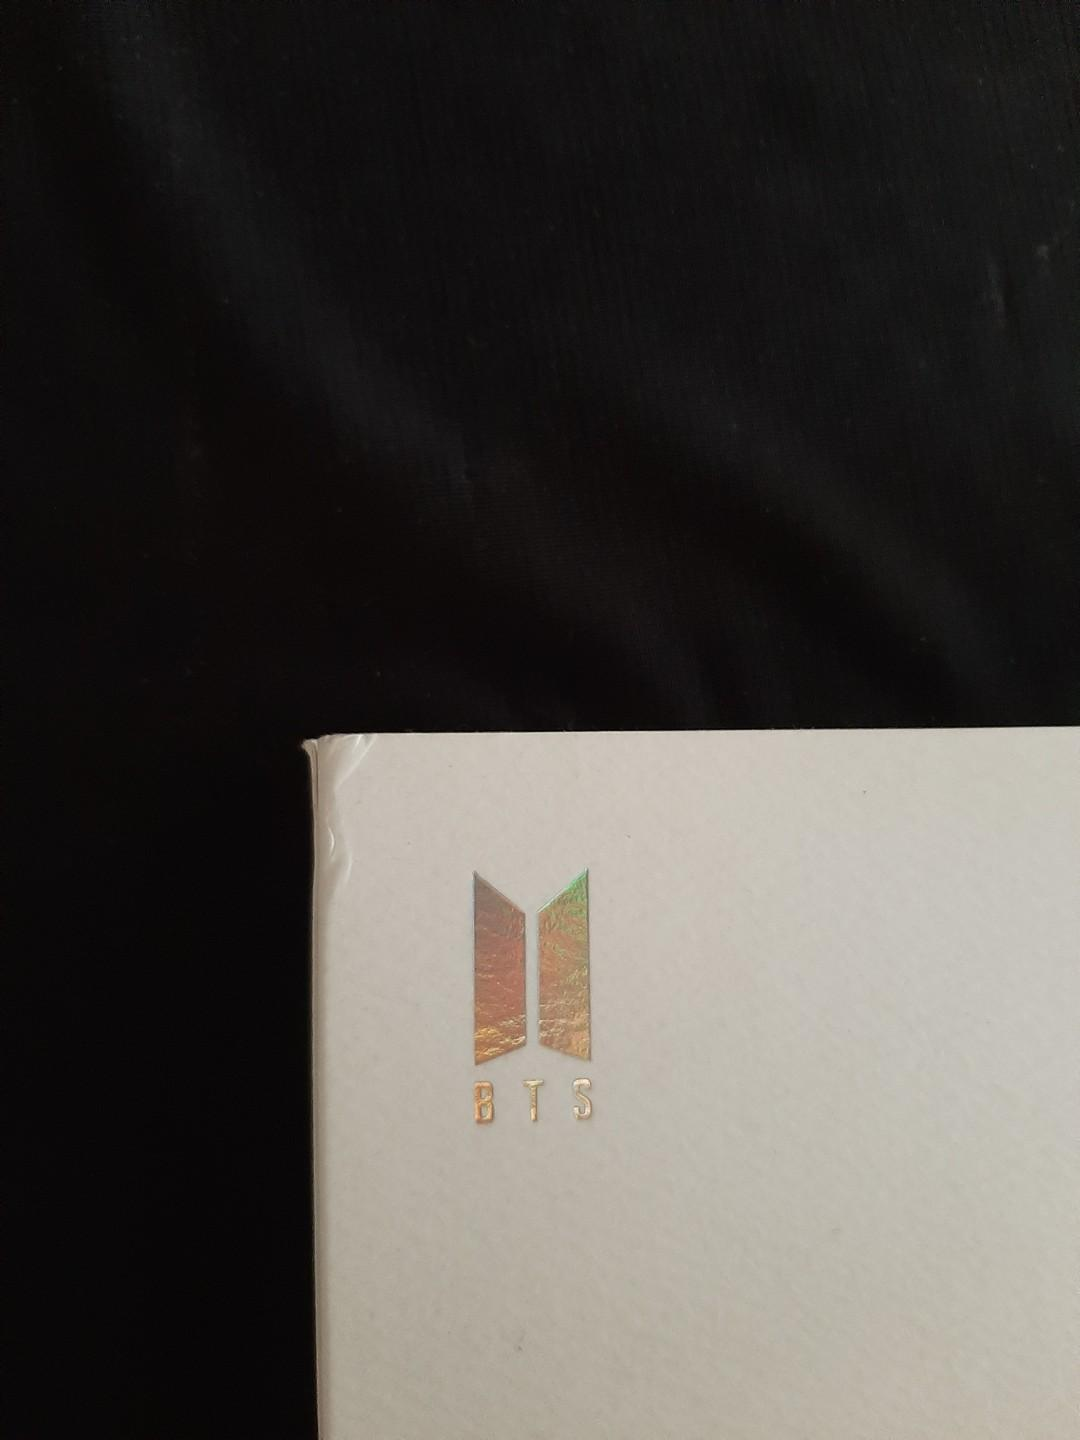 BTS ALBUM: LOVE YOURSELF HER; E VERSION UNSEALED WITH JHOPE PC